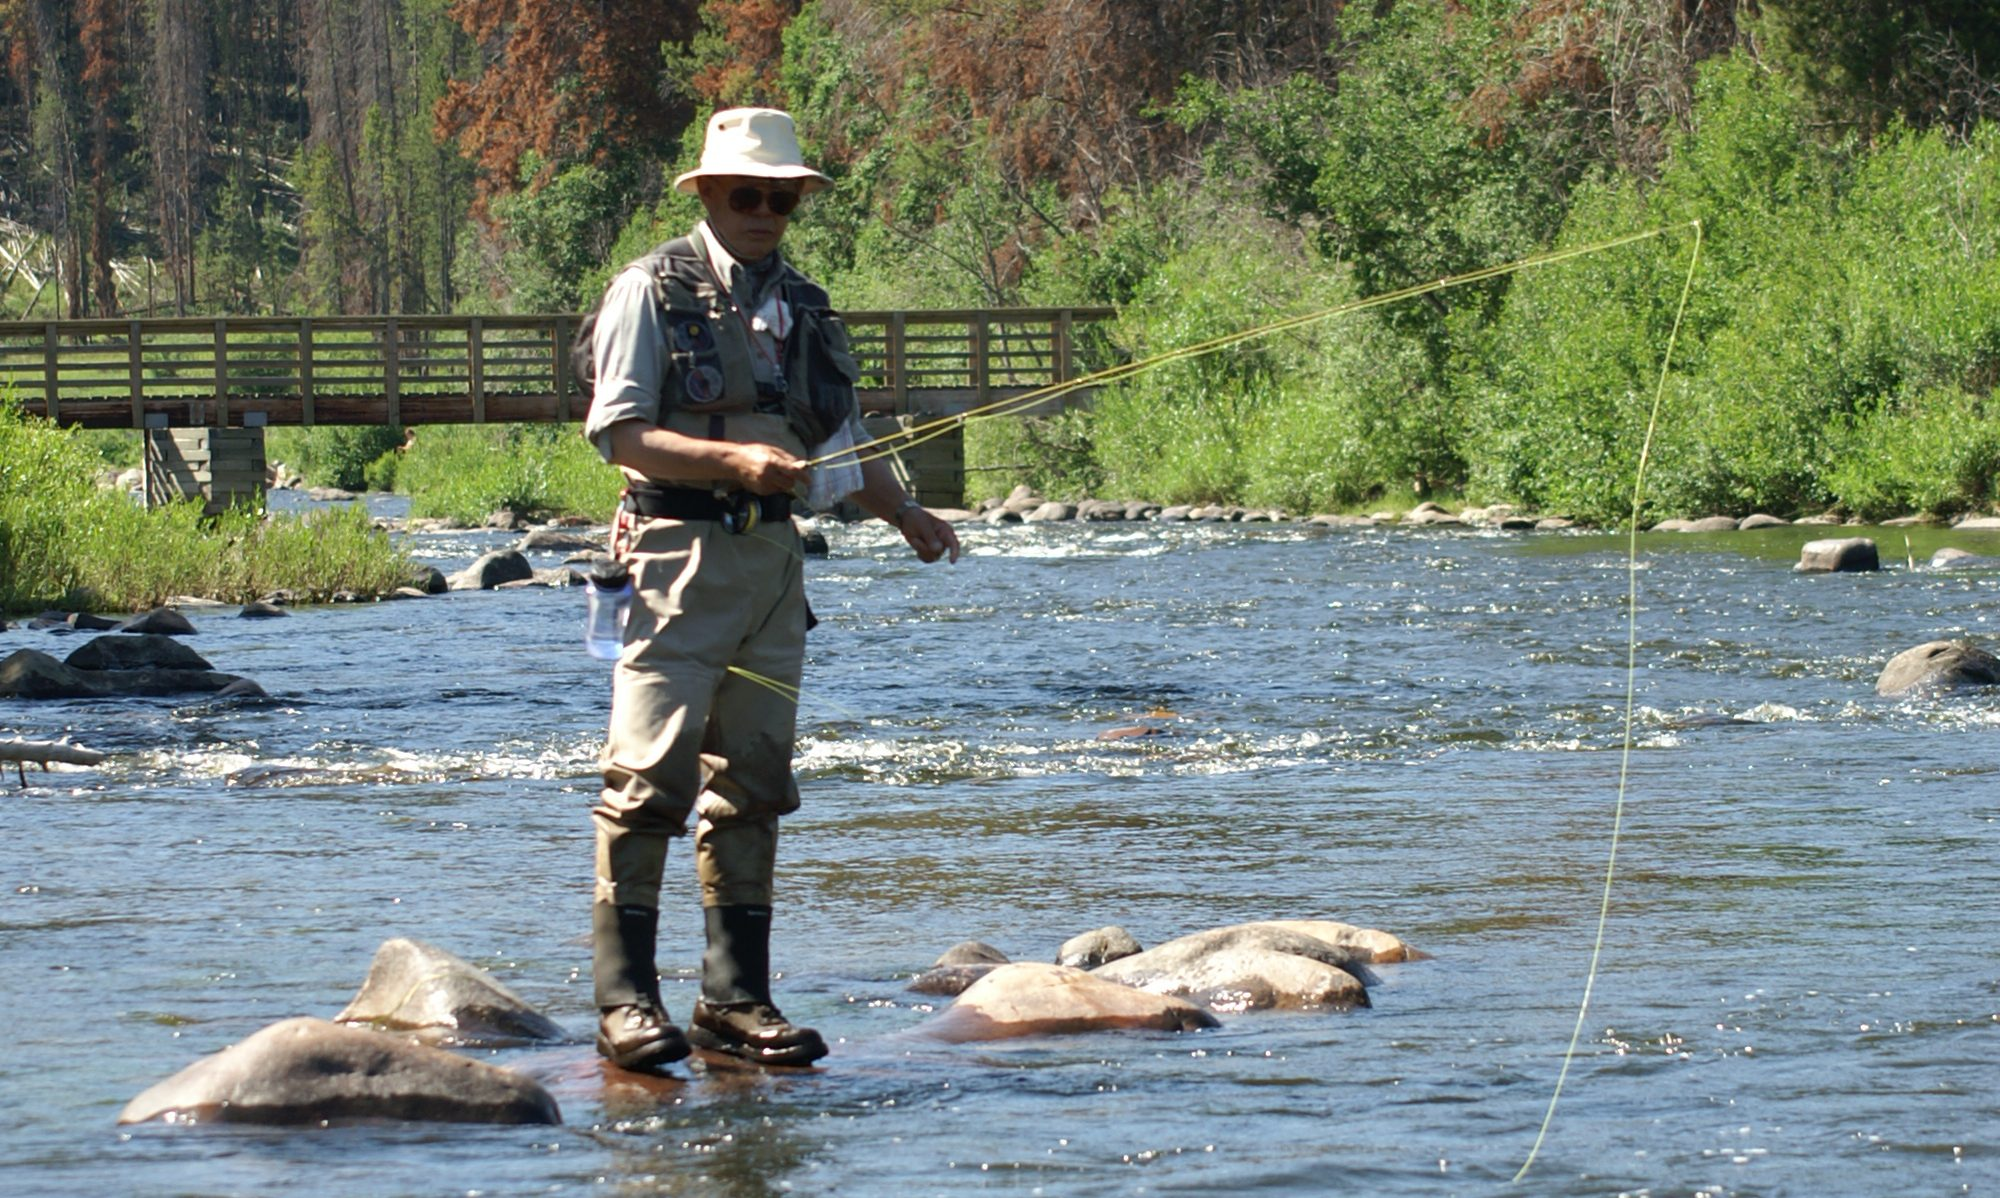 One Fly Fisherman